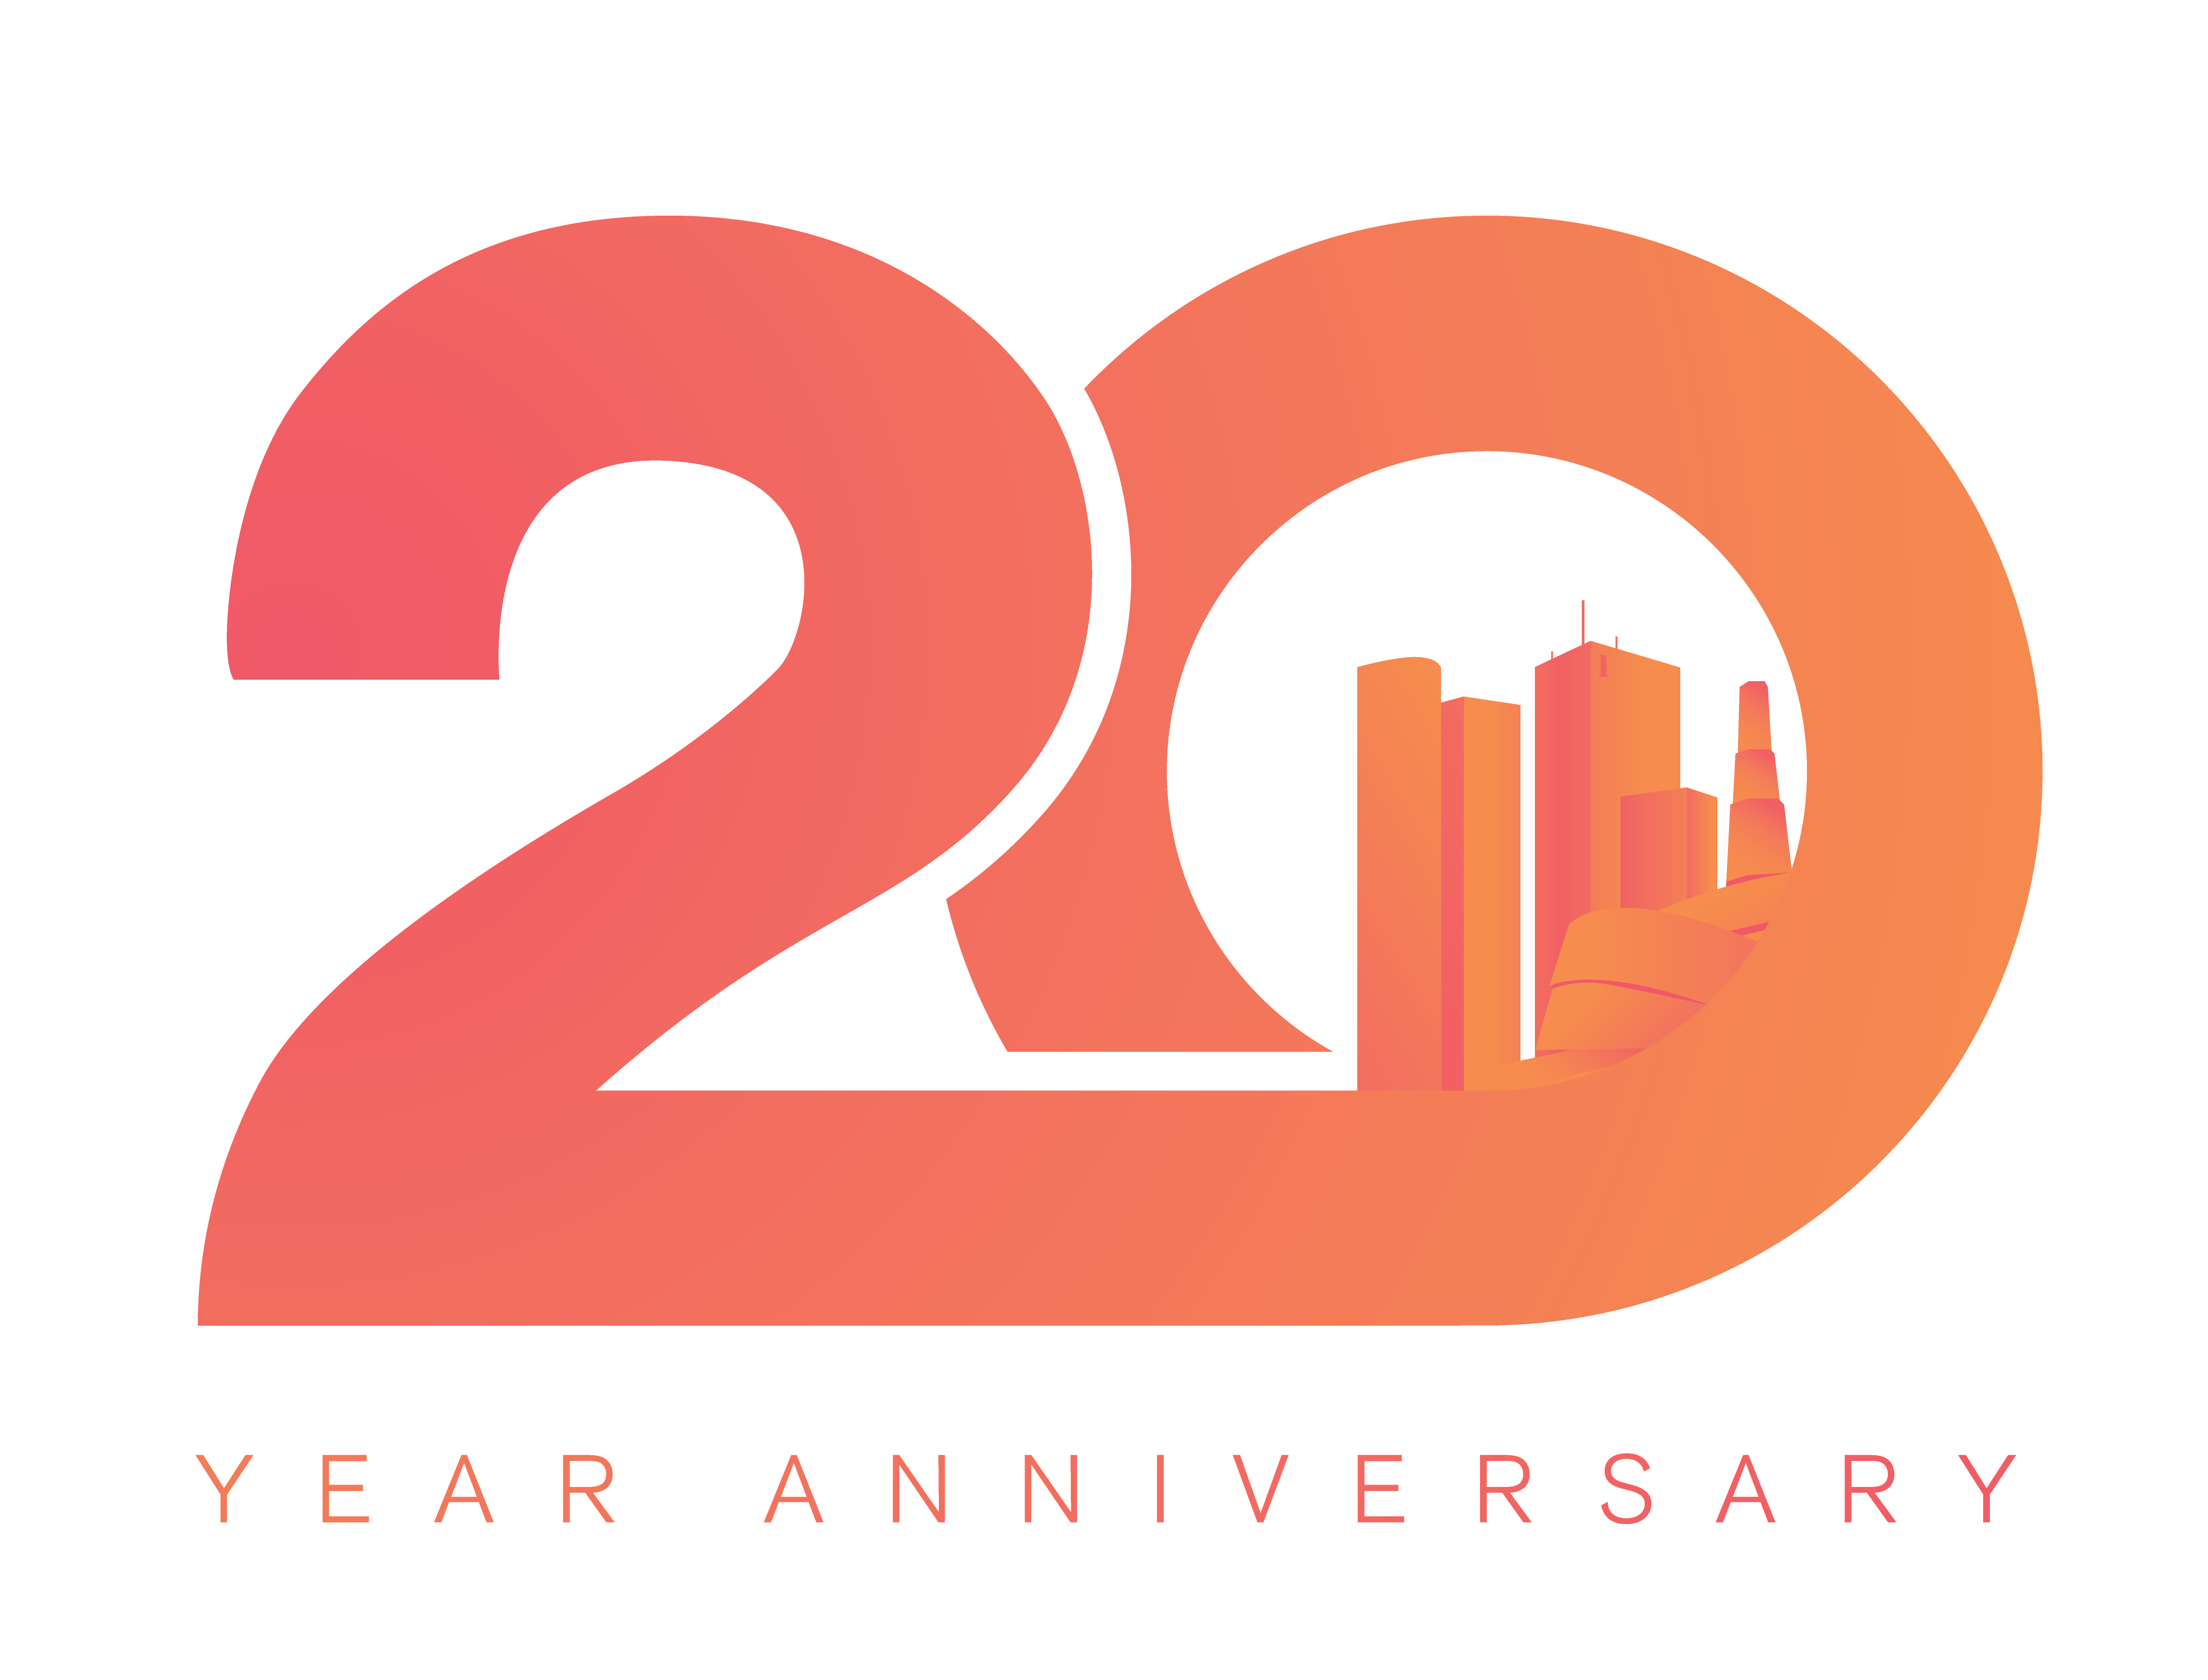 """Payworks 20th anniversary logo; a large 20 with """"year anniversary"""" written underneath. Winnipeg's skyline is inside the number 0."""